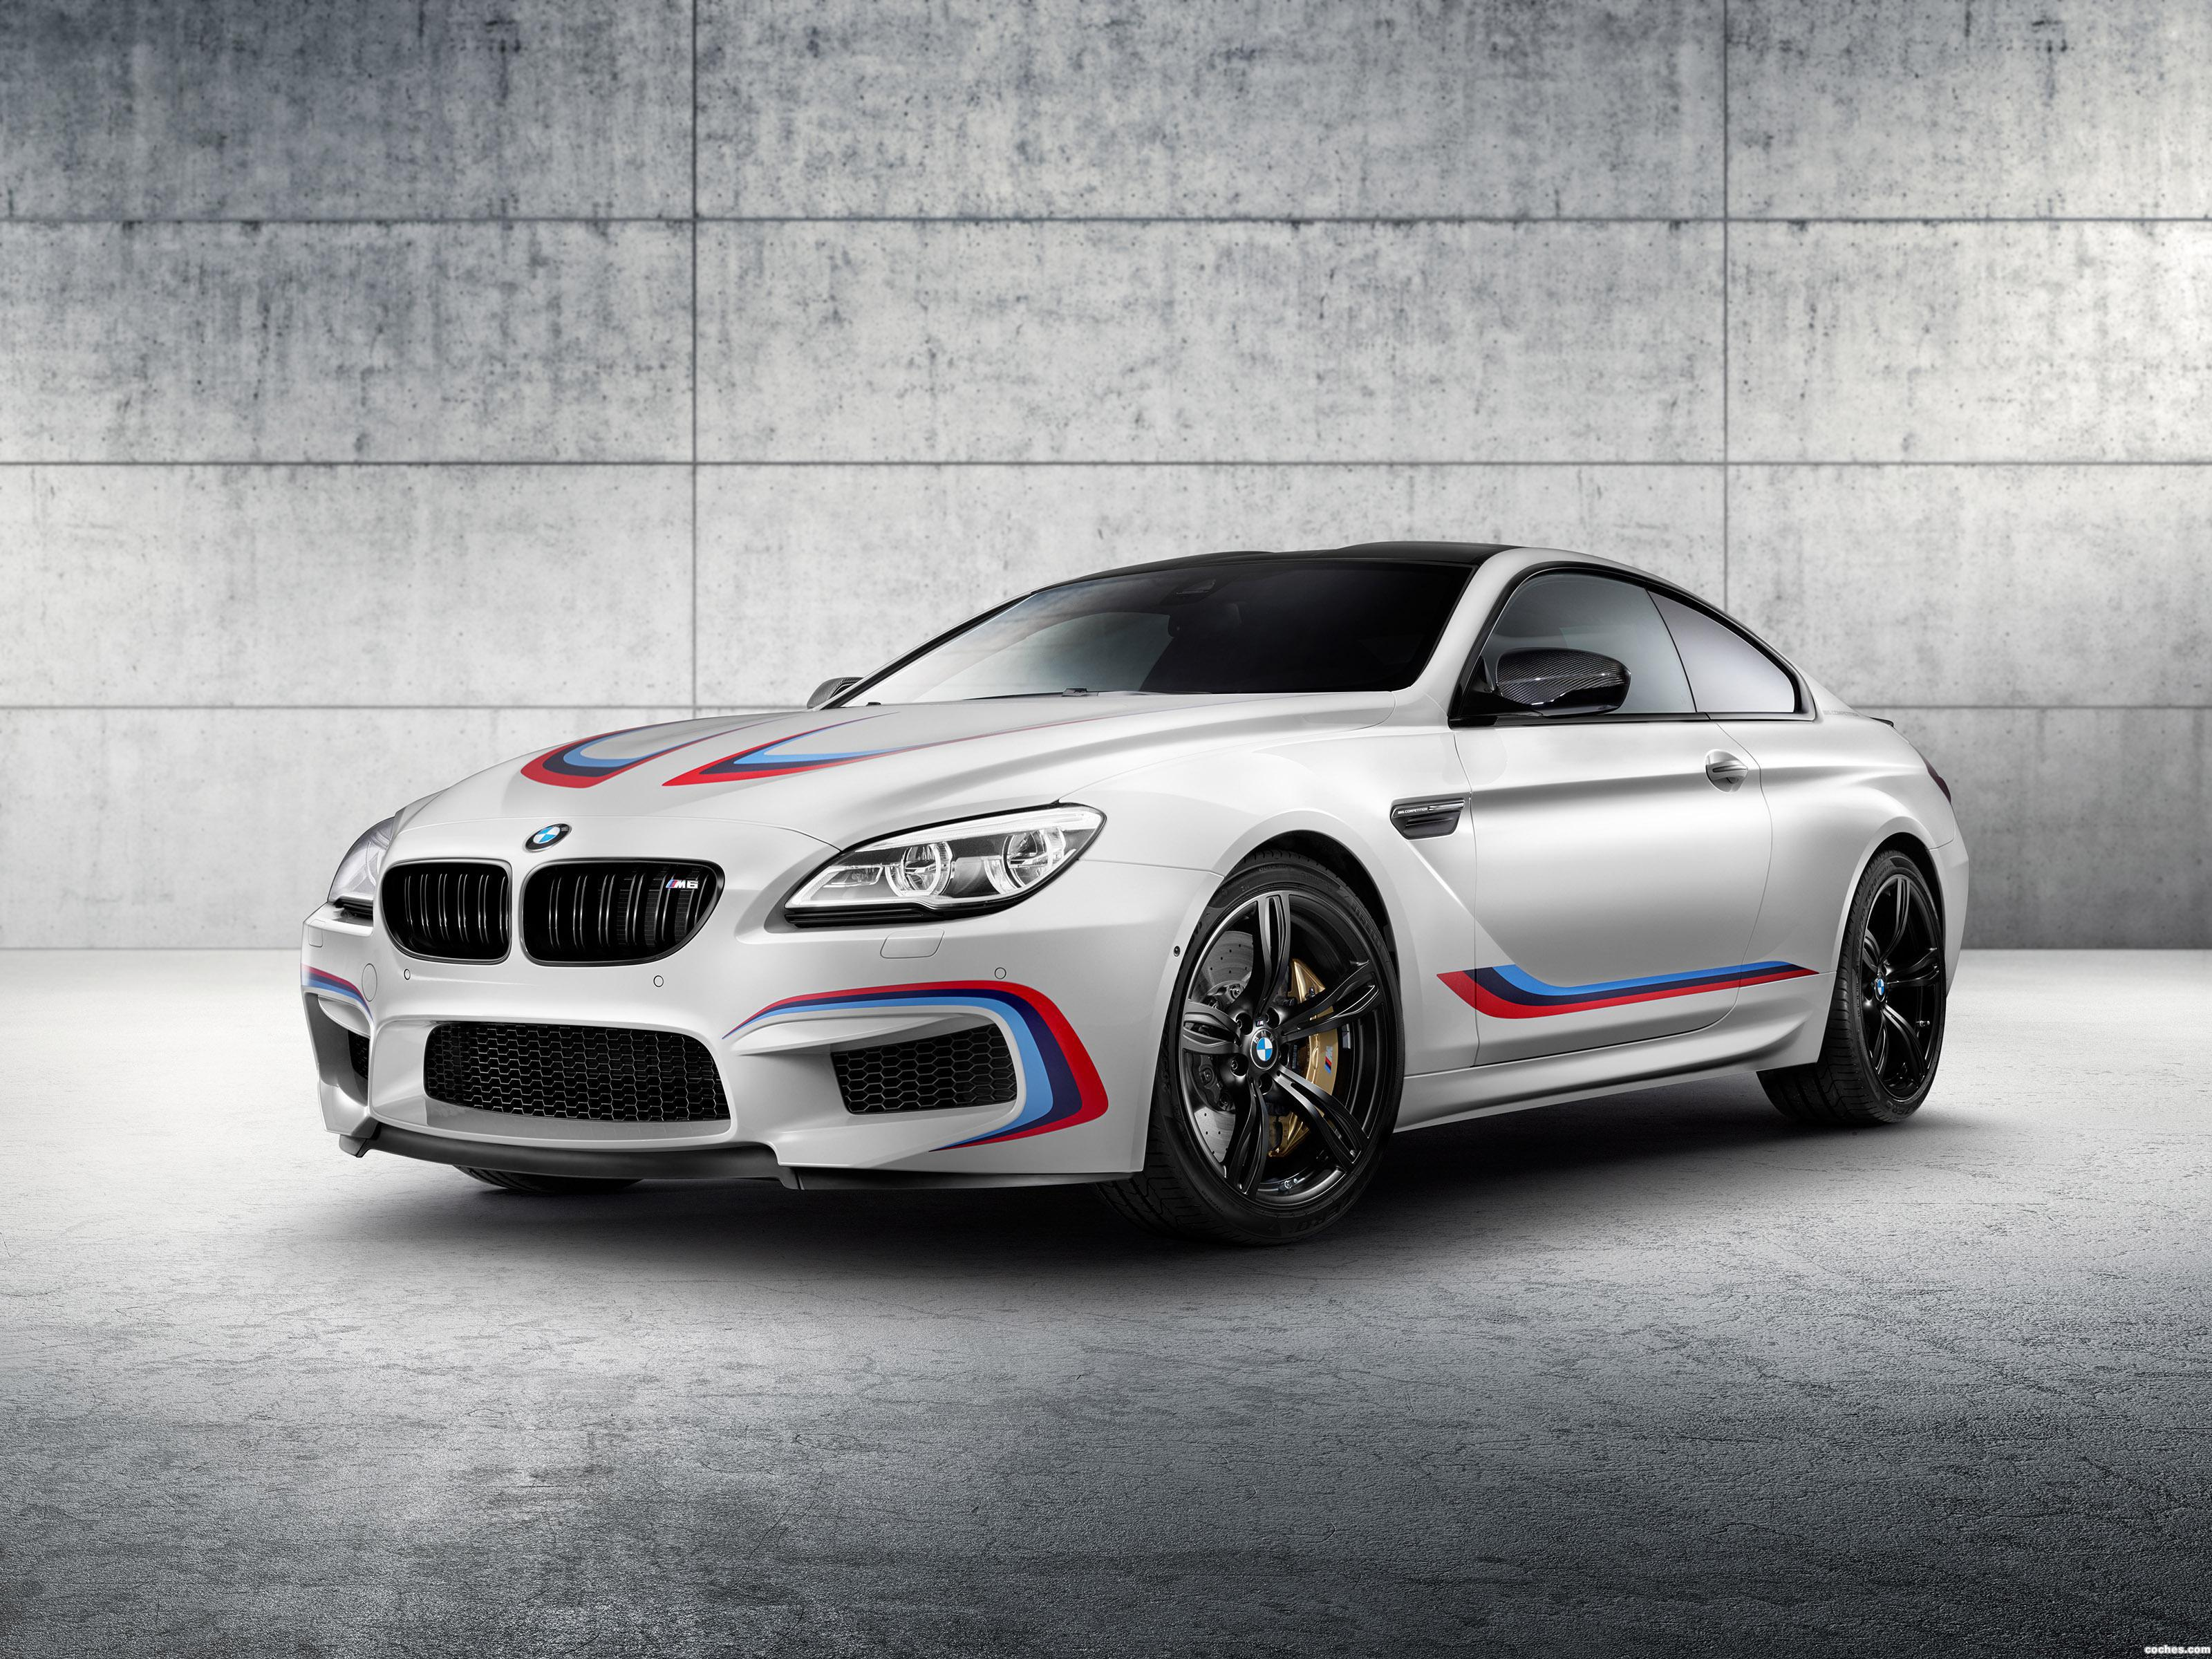 bmw_m6-coupe-competition-edition-f13-2015_r4.jpg